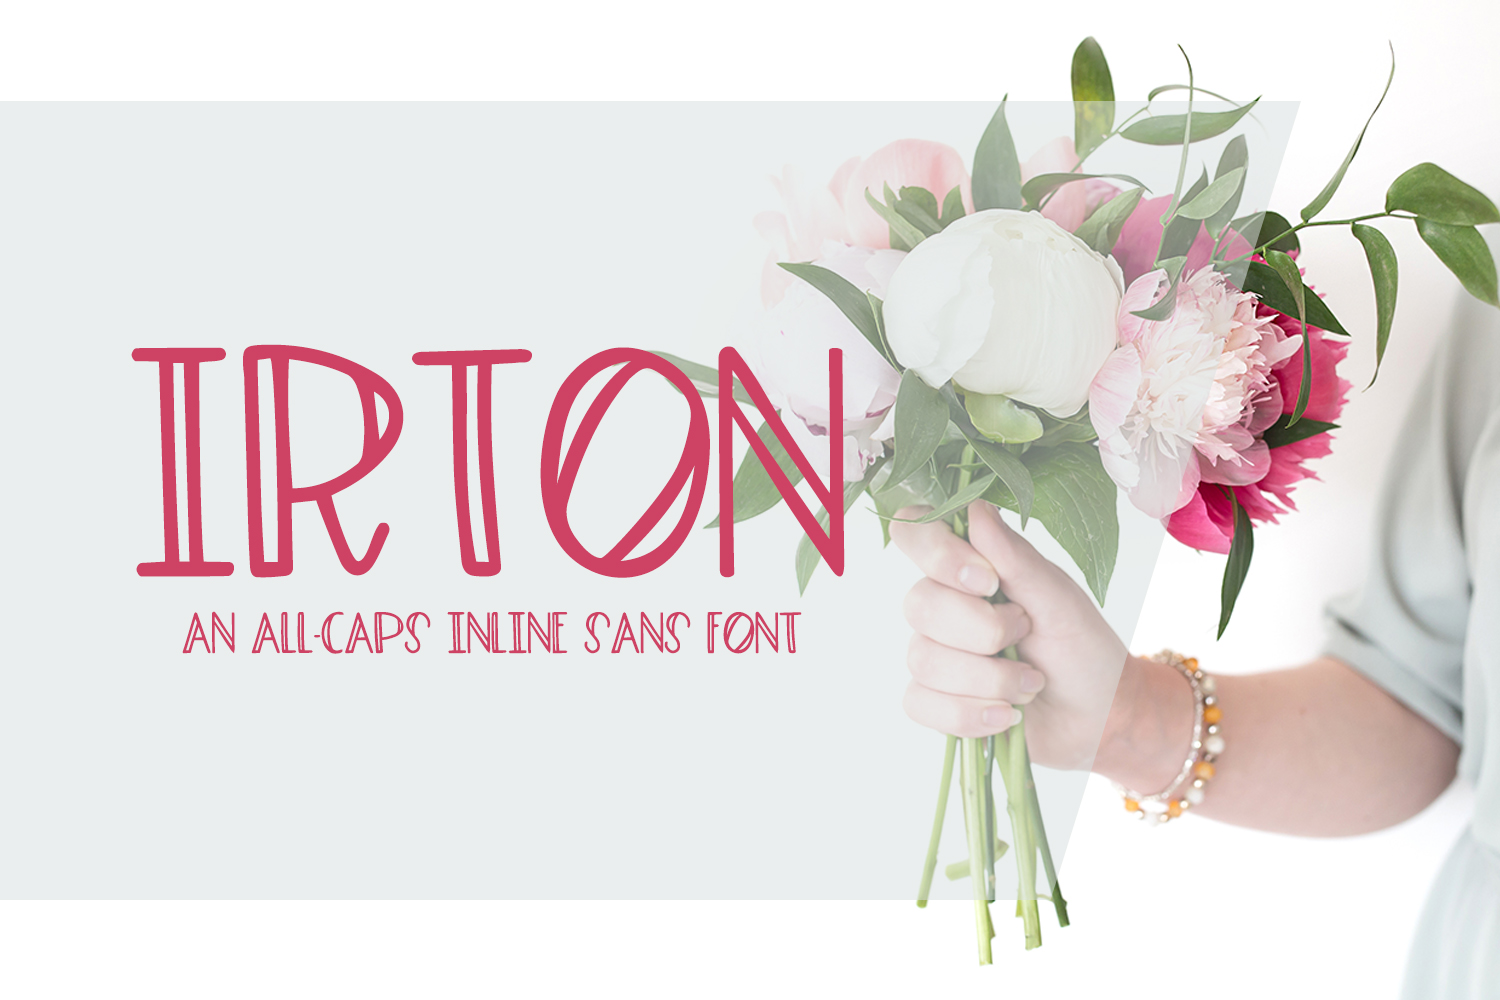 Irton Inline Font By BeckMcCormick